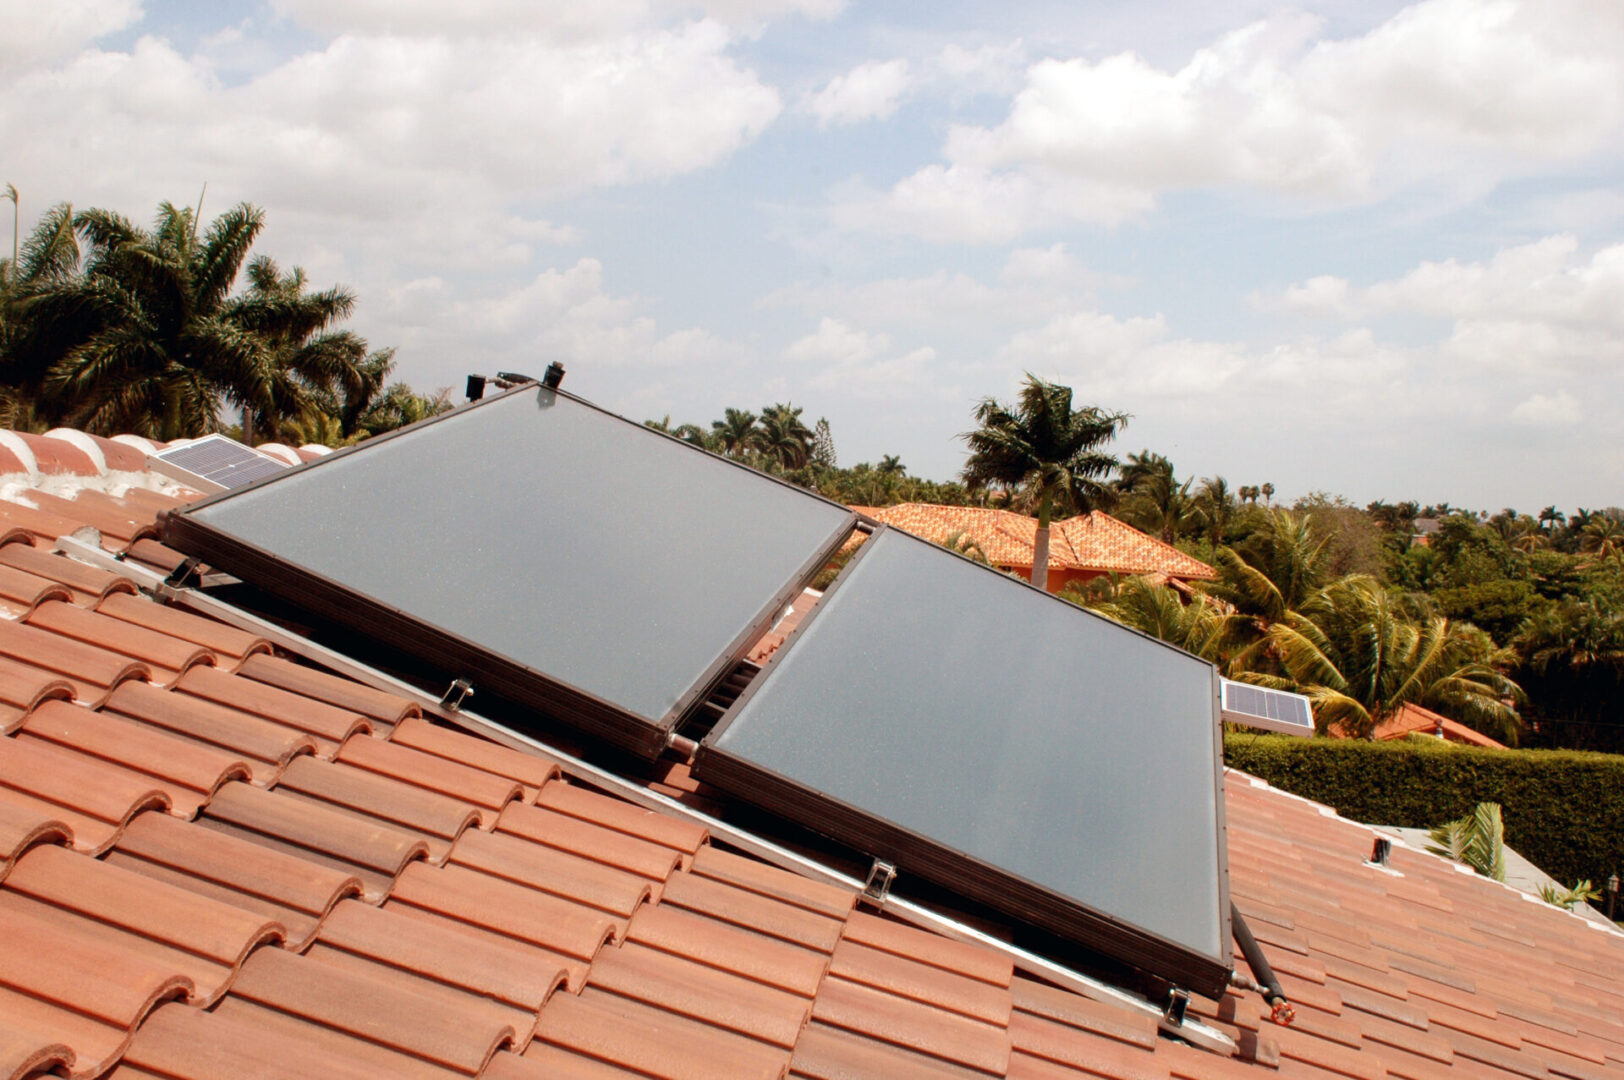 Dual Solar Domestic Hot Water System - Kendall, Florida